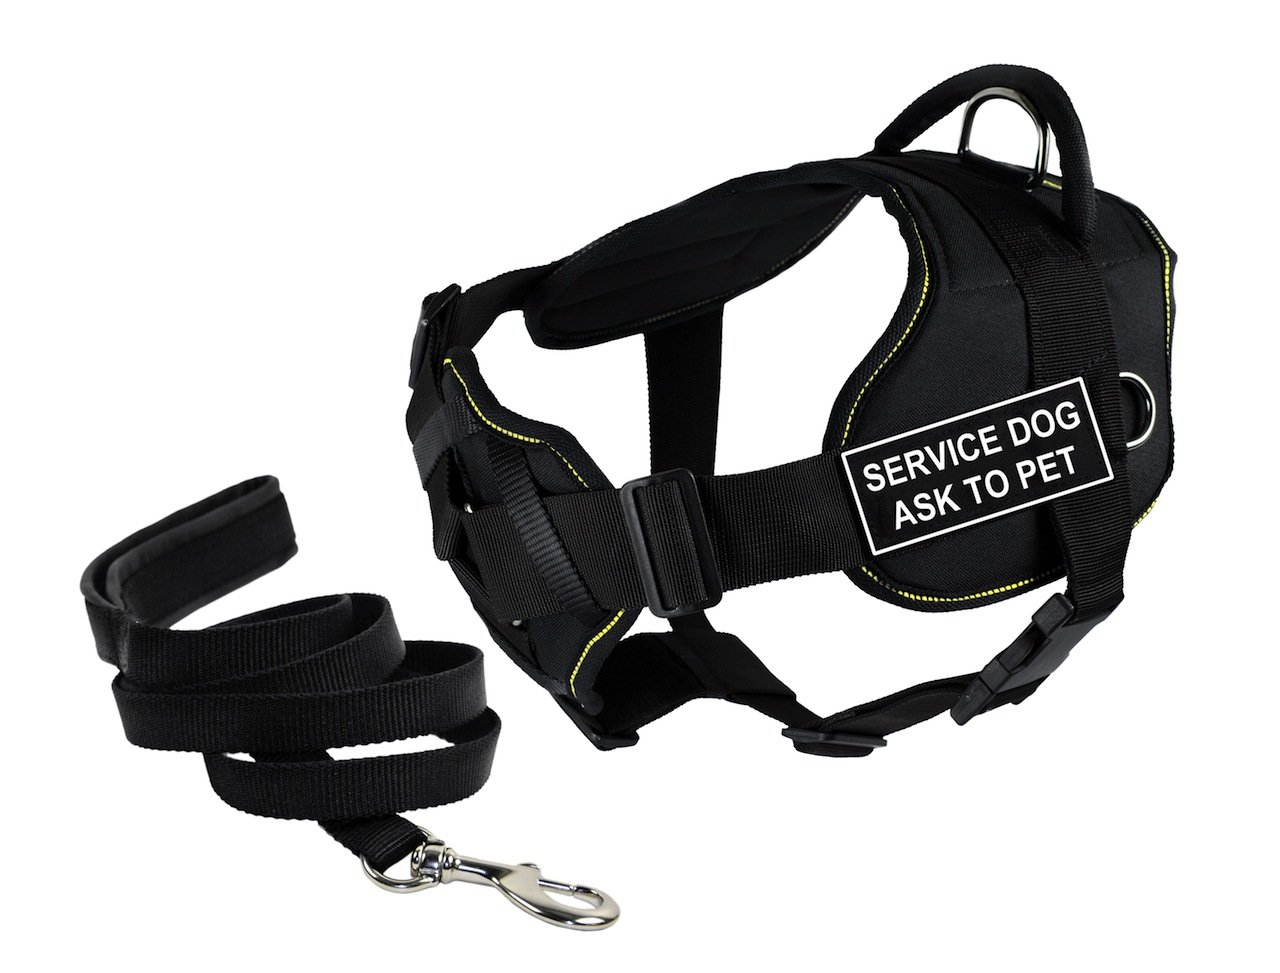 Dean & Tyler's DT Fun Chest Support SERVICE DOG ASK TO PET Harness, Small, with 6 ft Padded Puppy Leash.